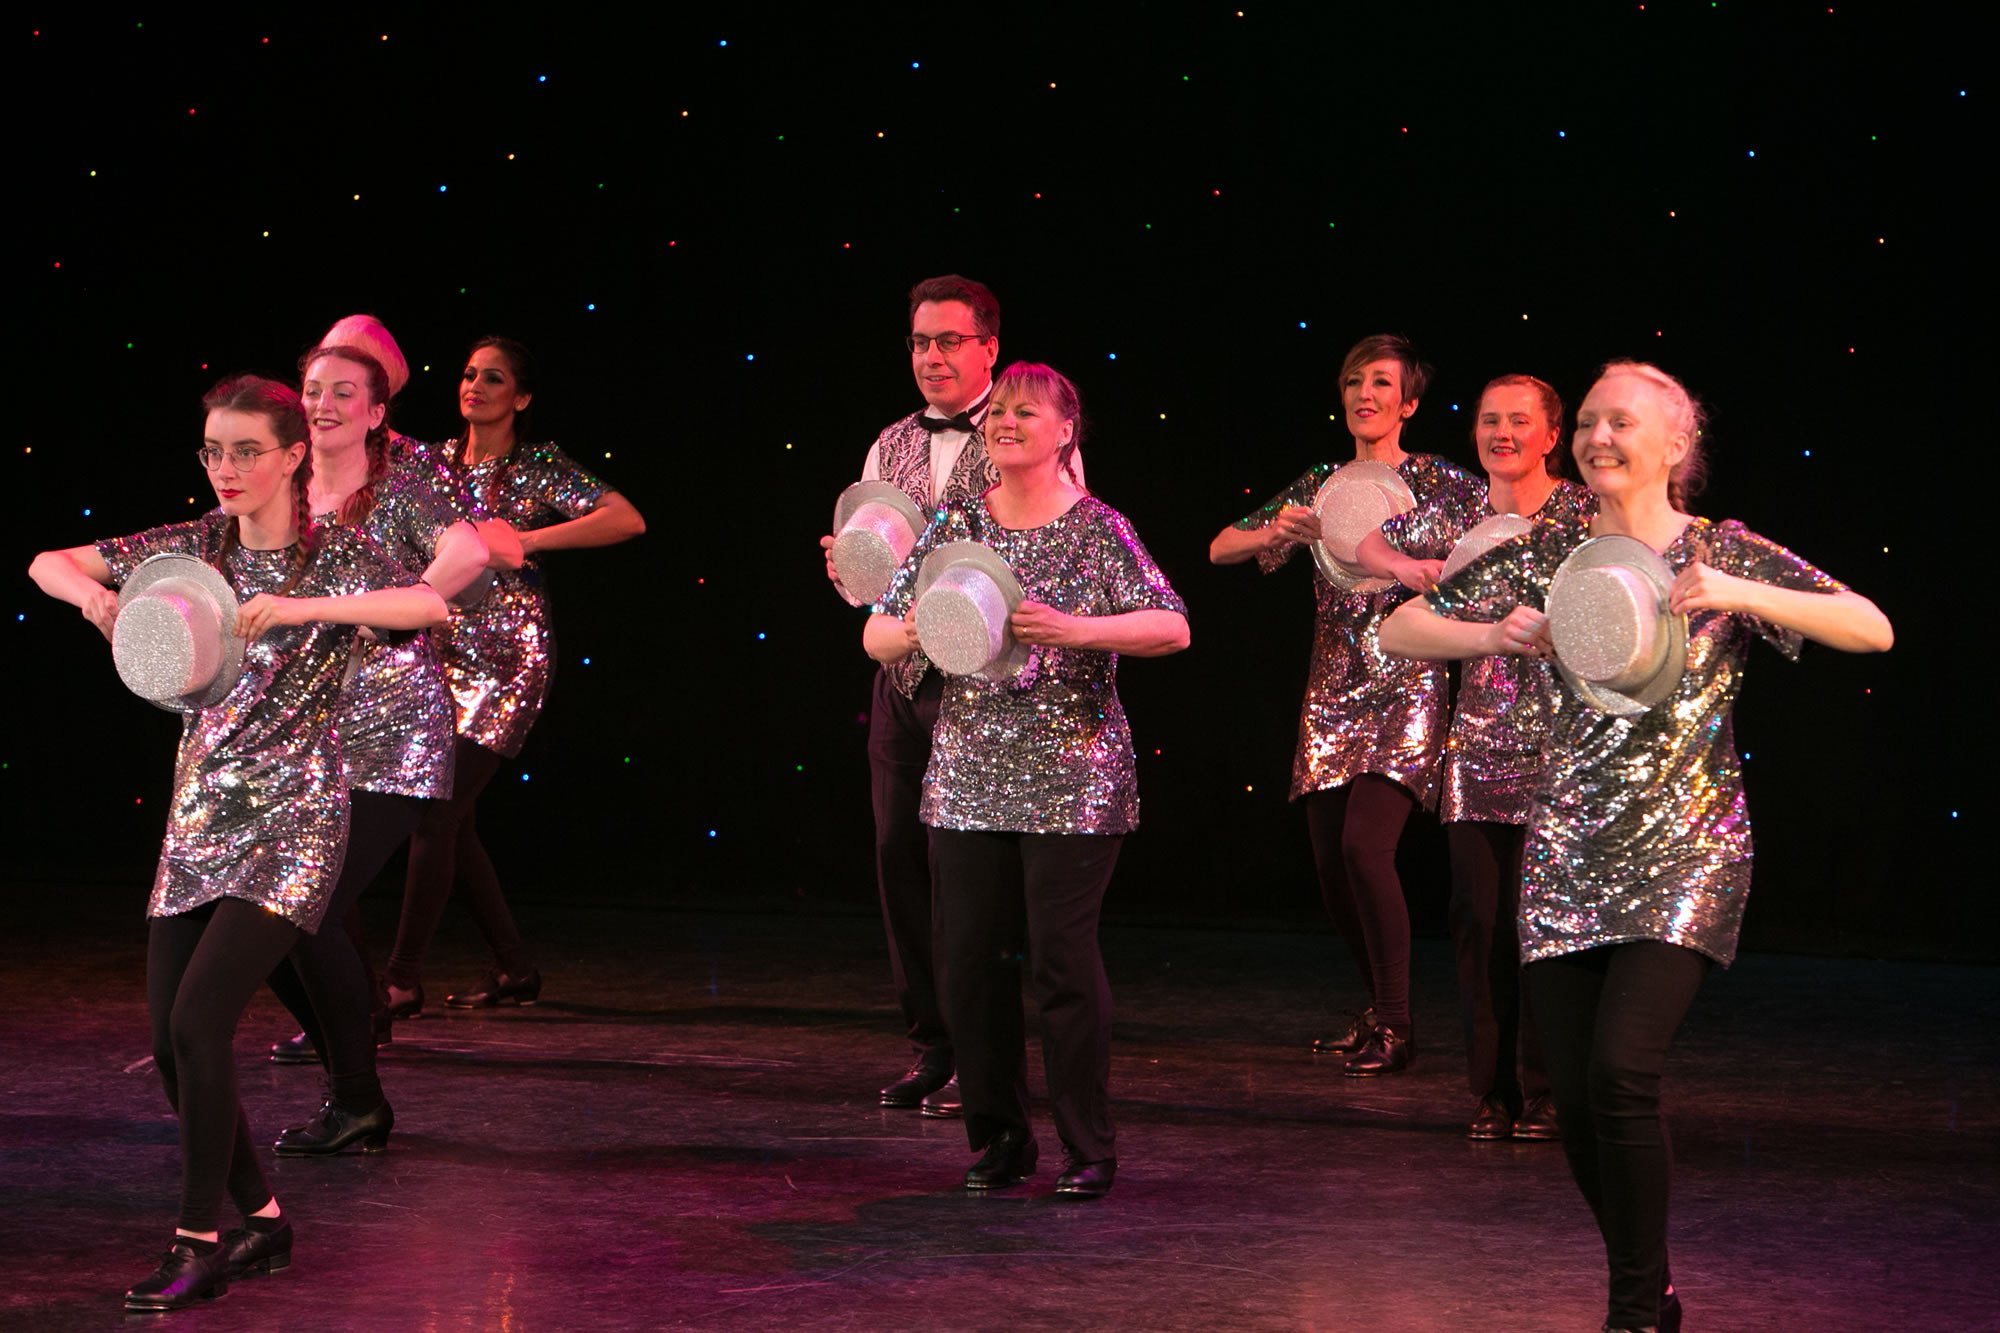 Hitchin_School_of_Dance_Show_2019-SM1_2897.jpg